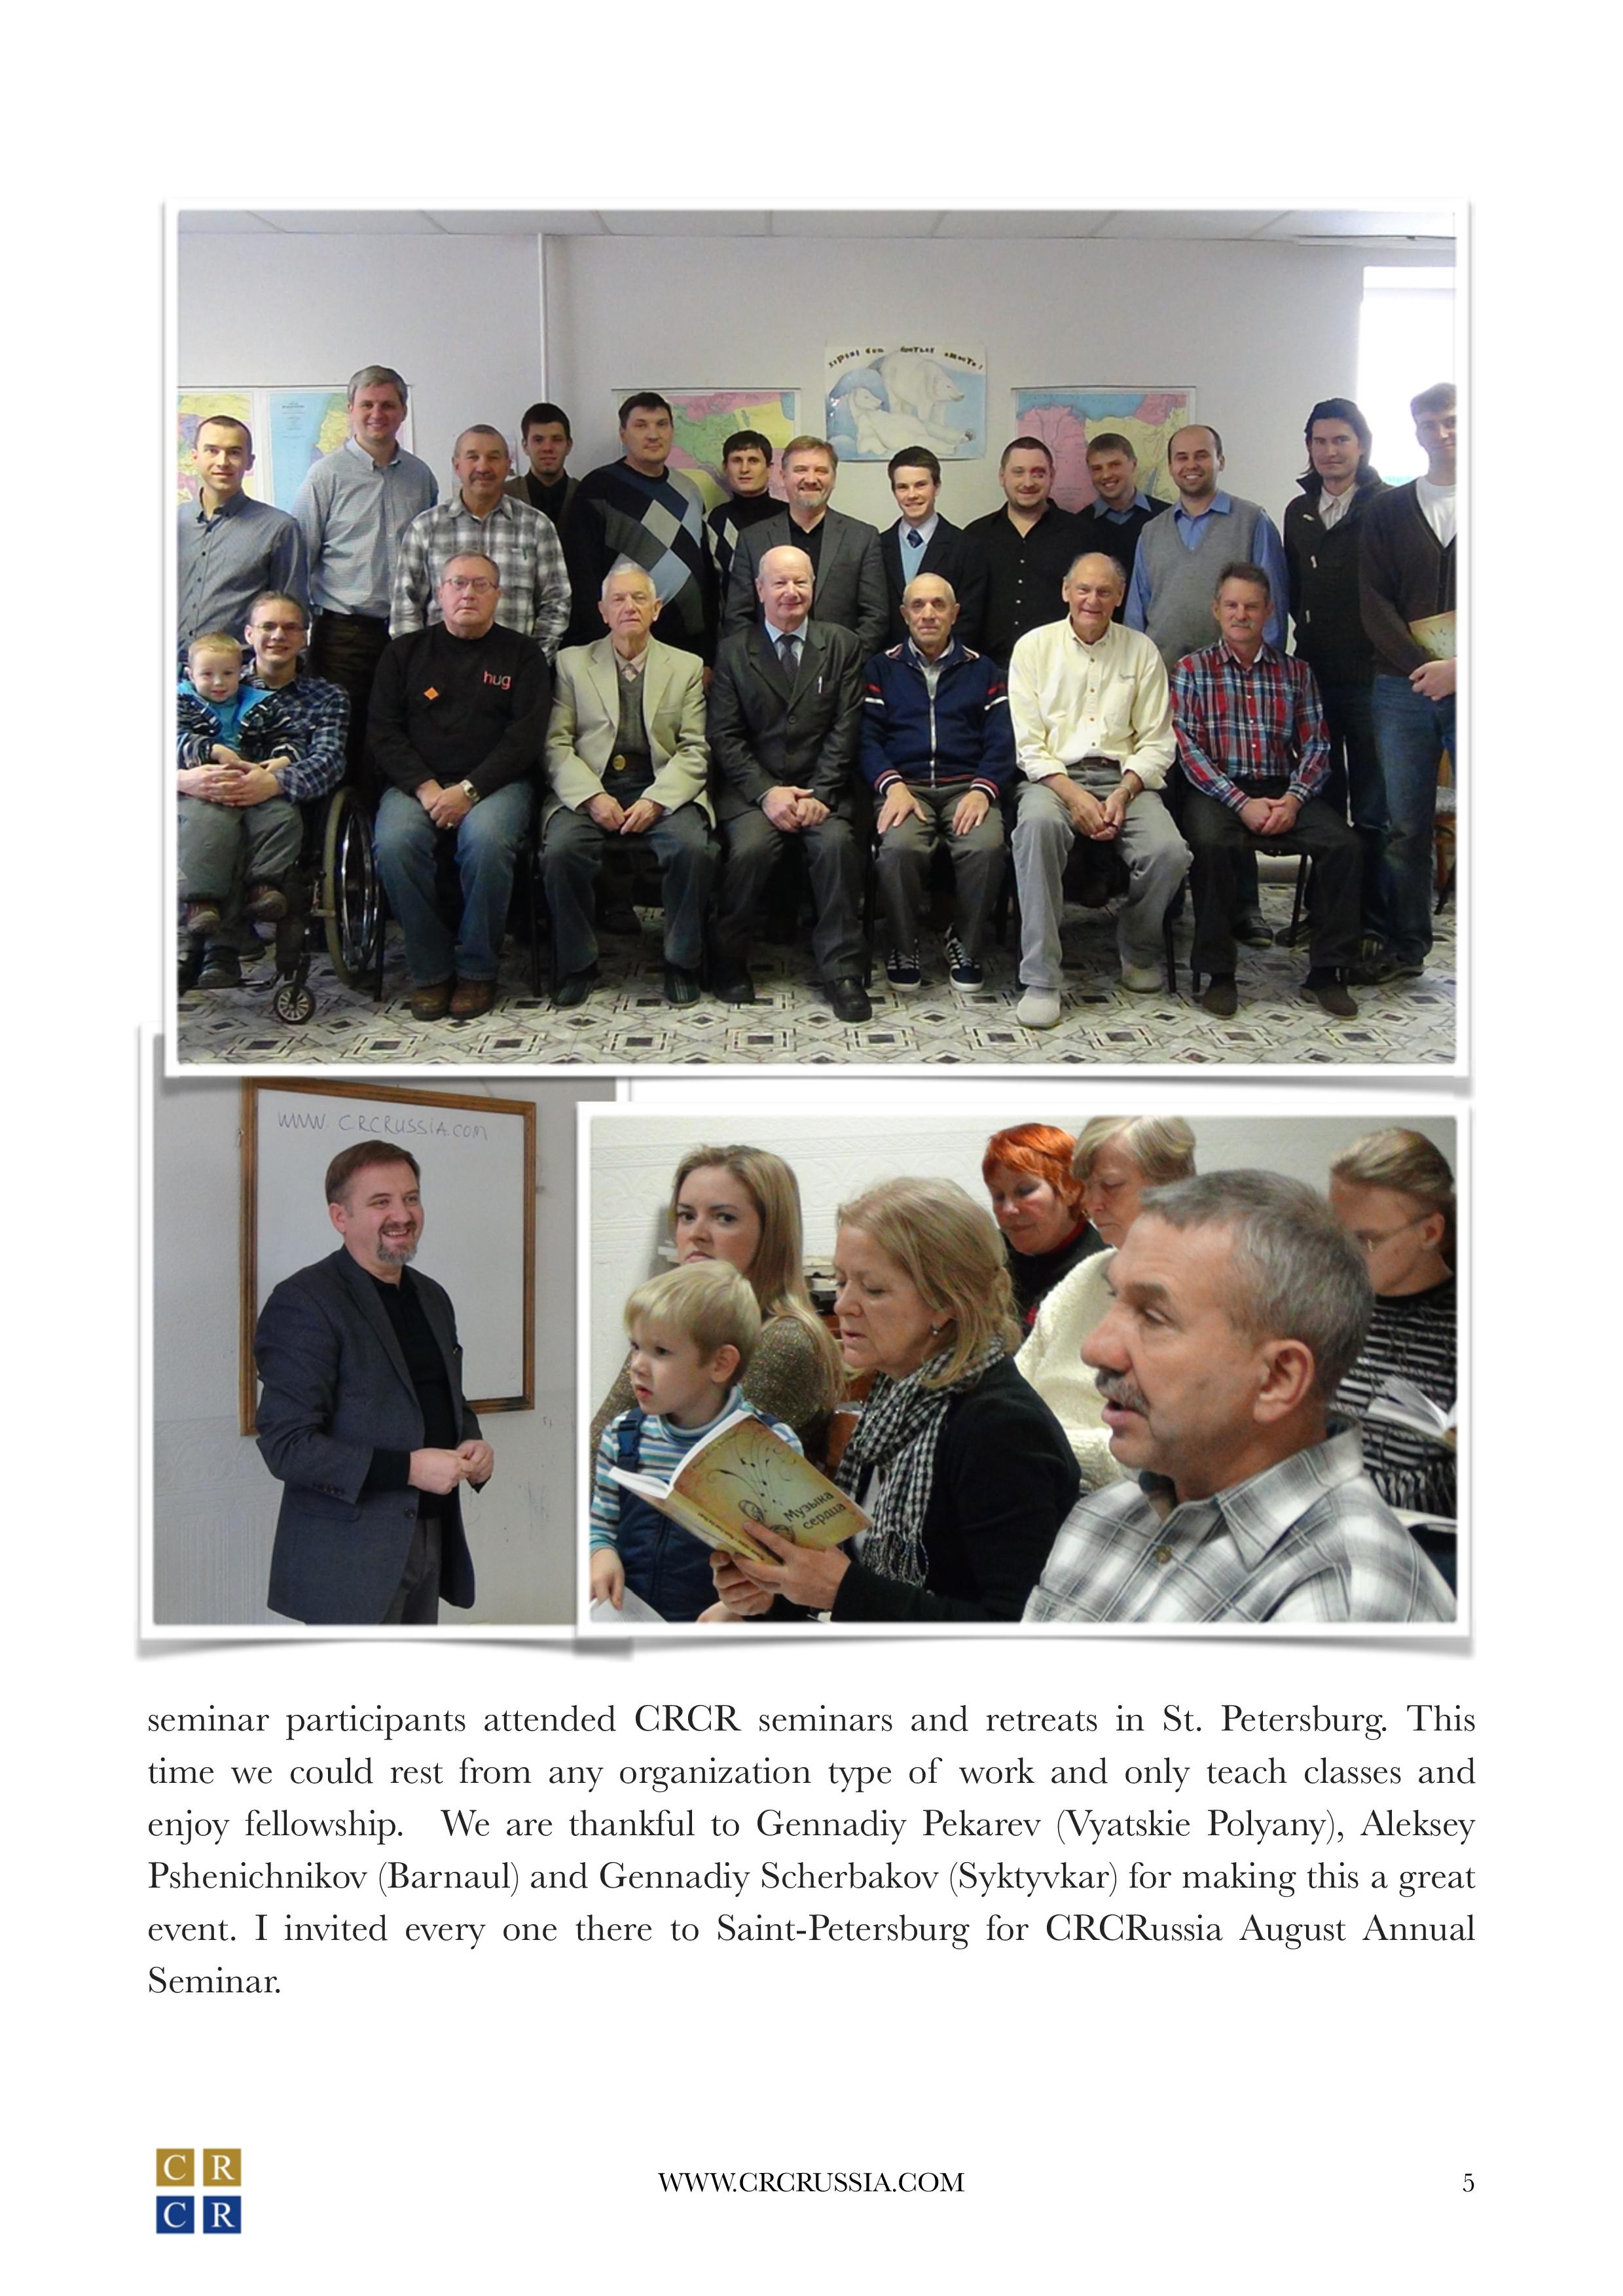 October 2014 CRCRNewsletter-page-005